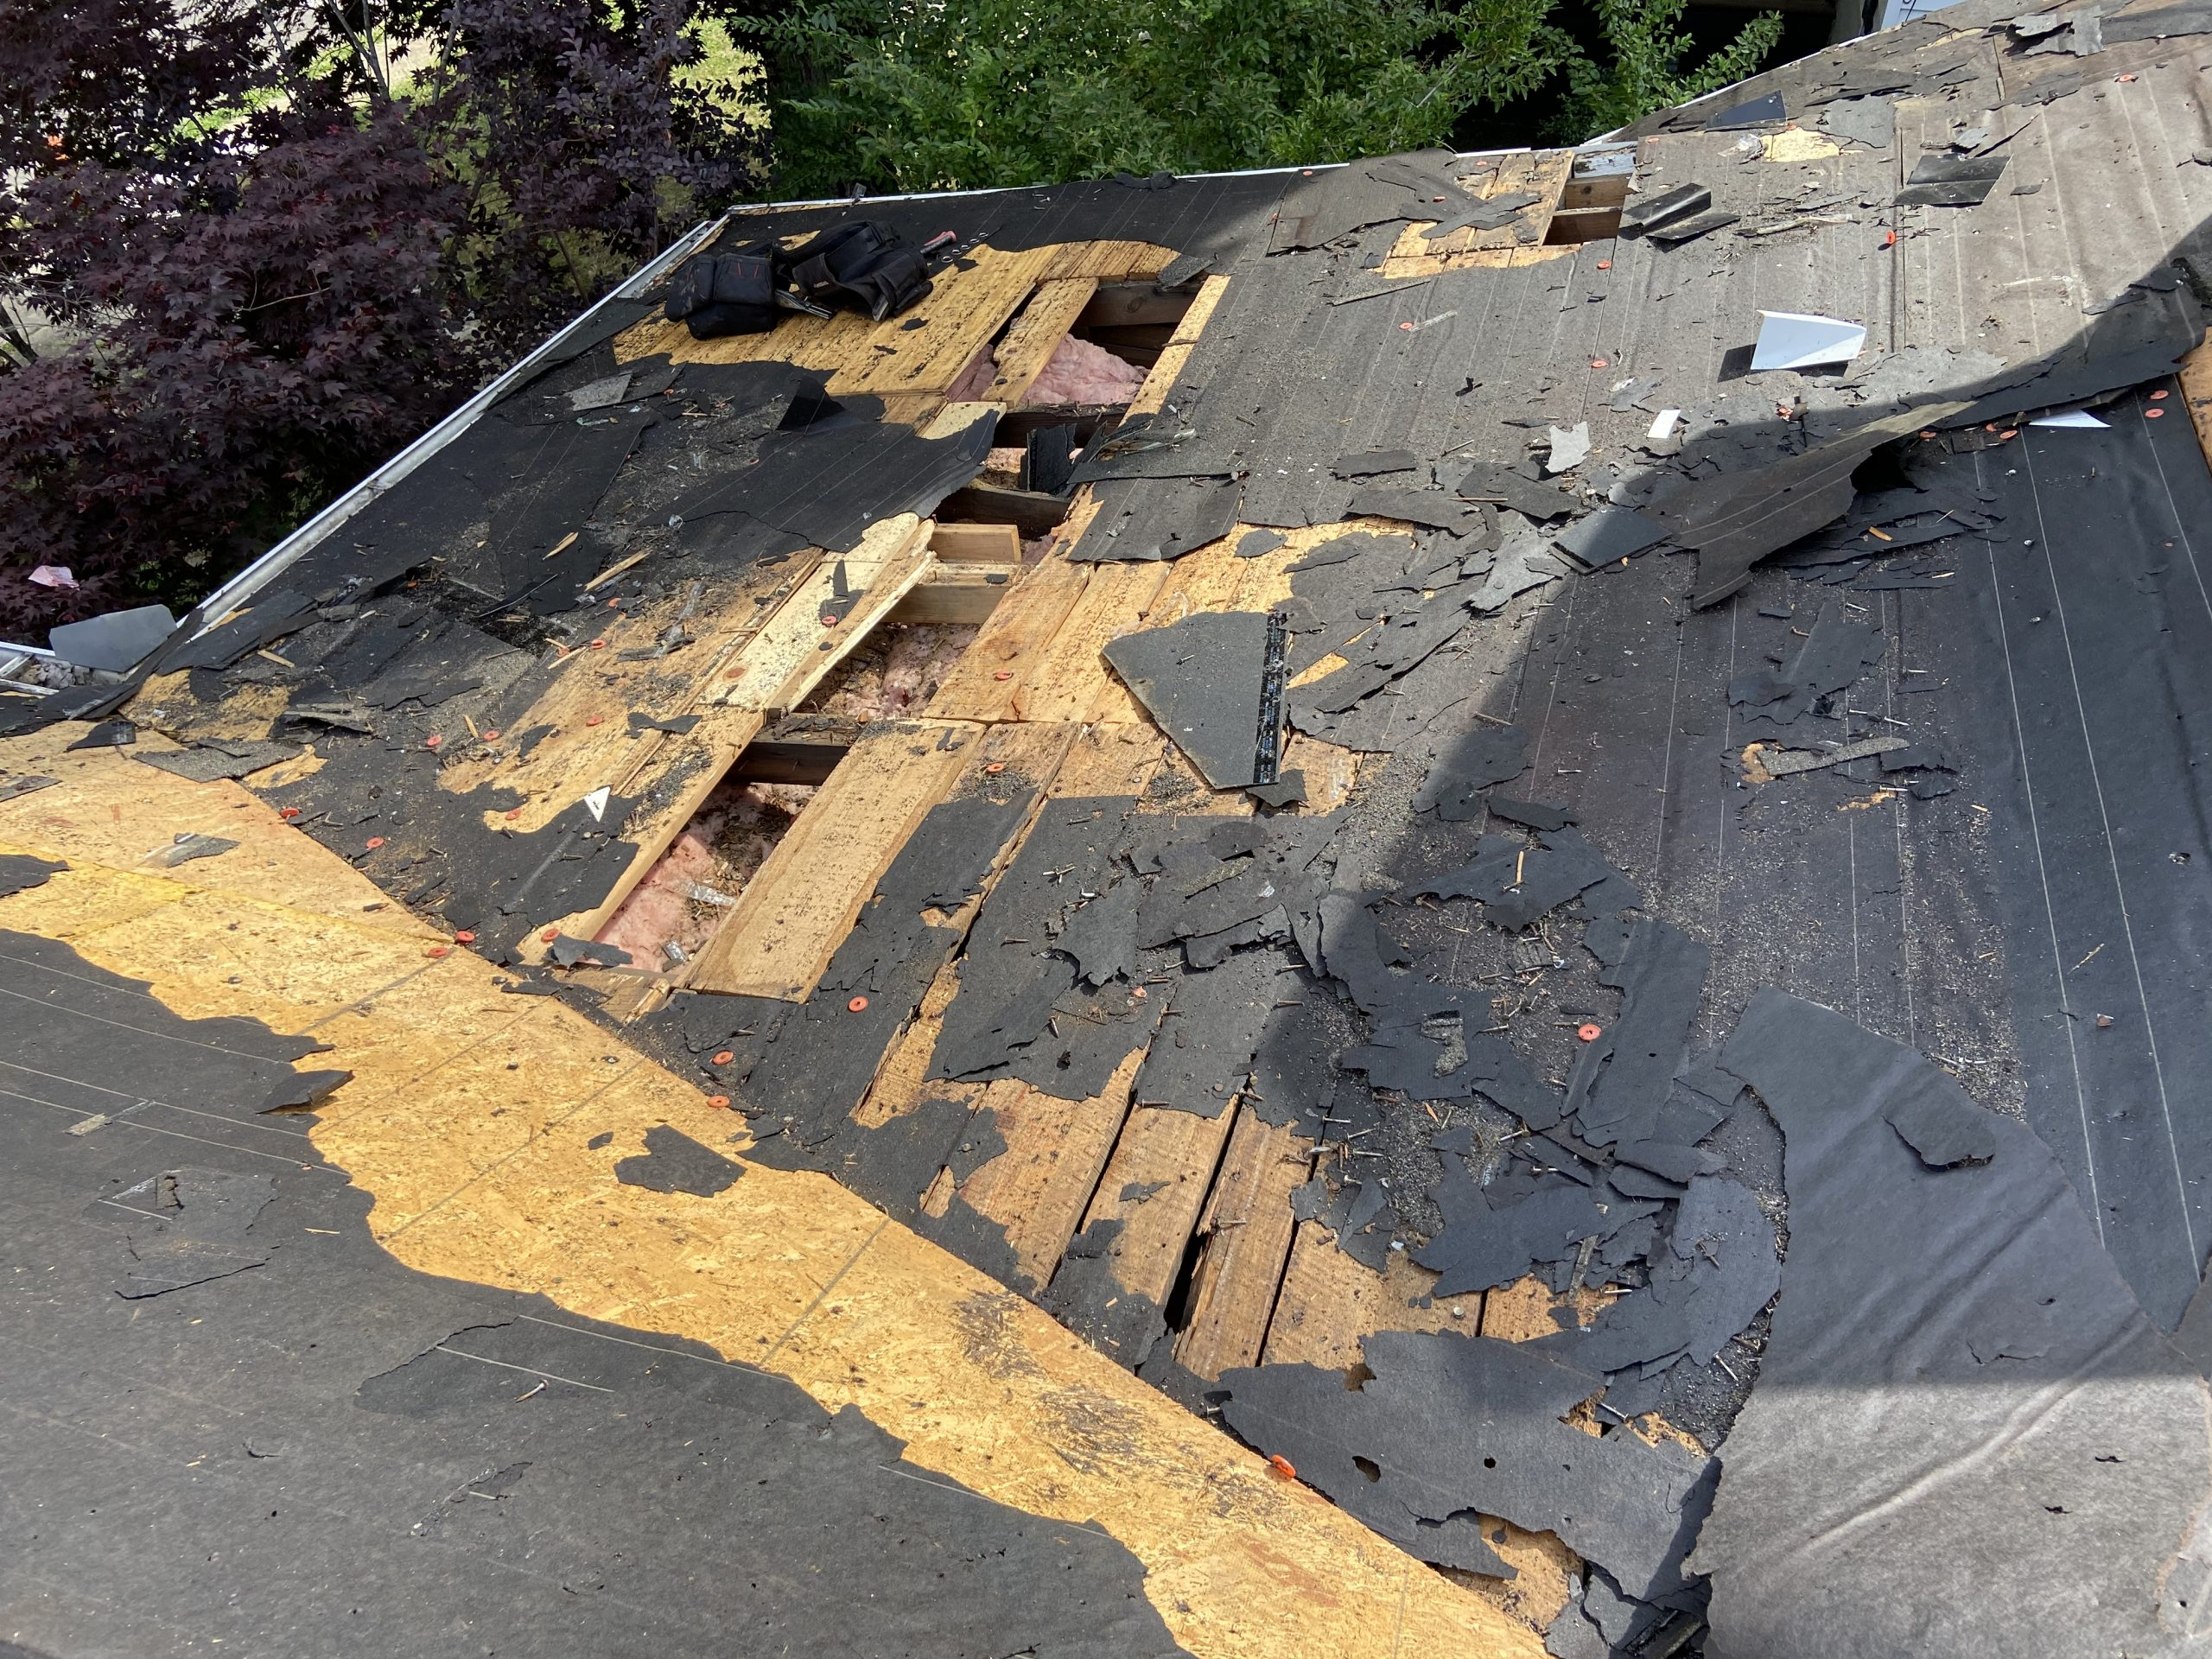 this is a picture showing how bad of condition that the old roof deck was in